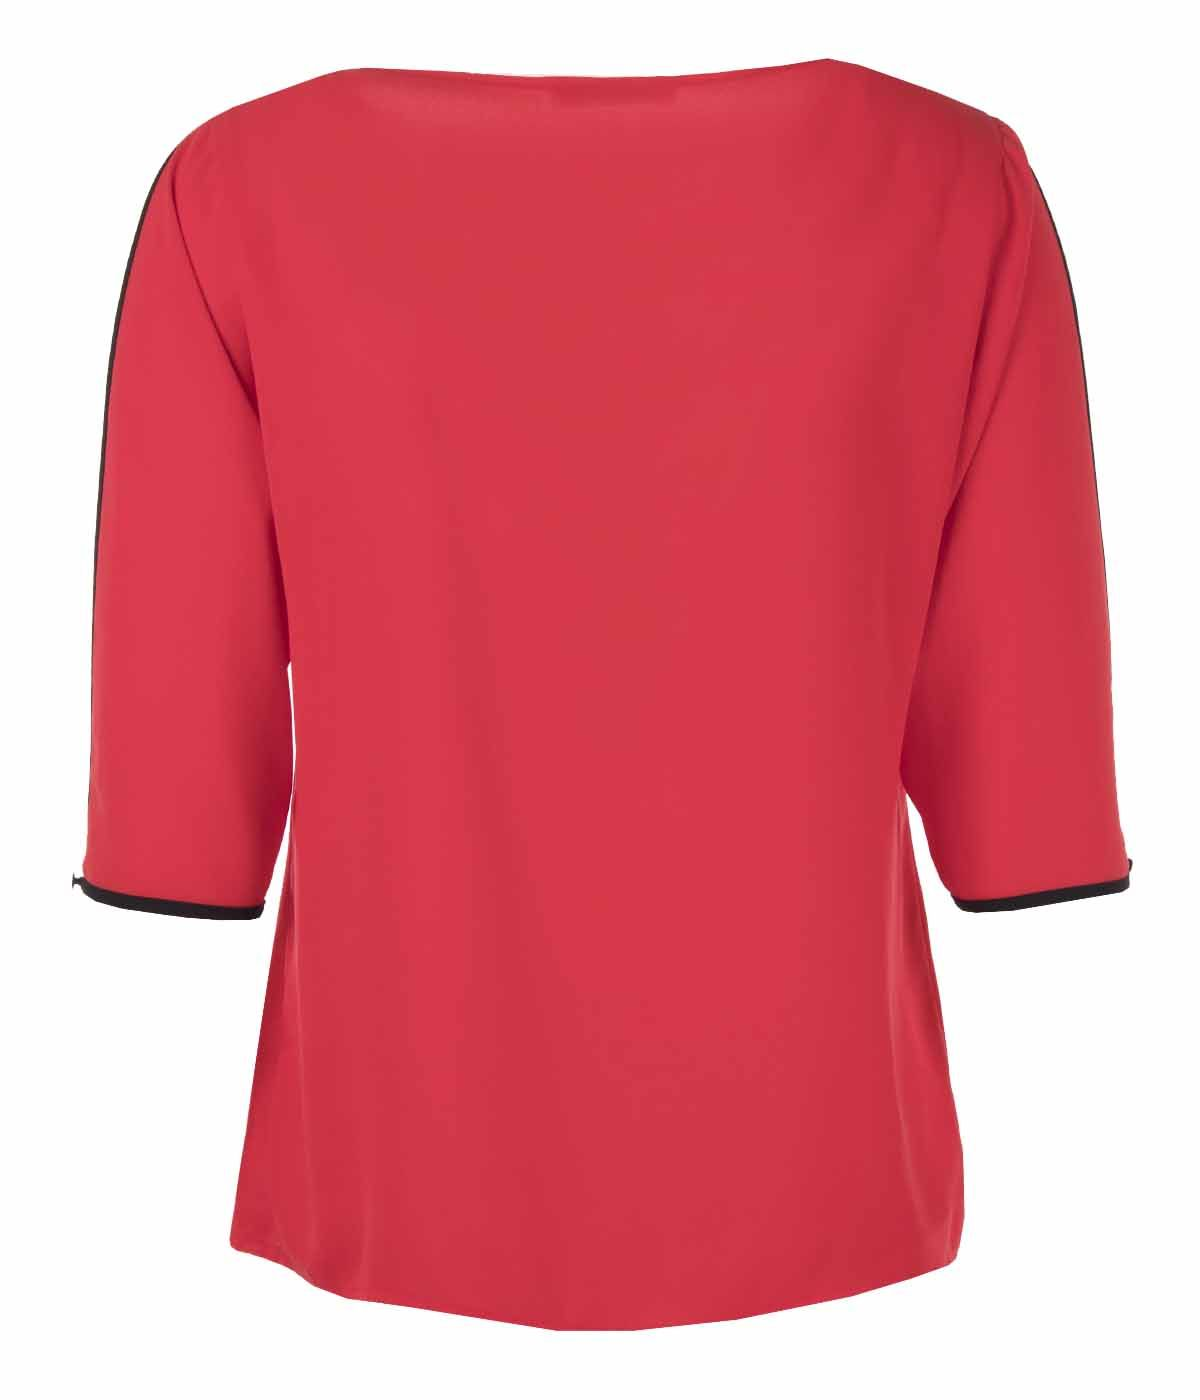 V-neck blouse with 3/4 sleeves  1